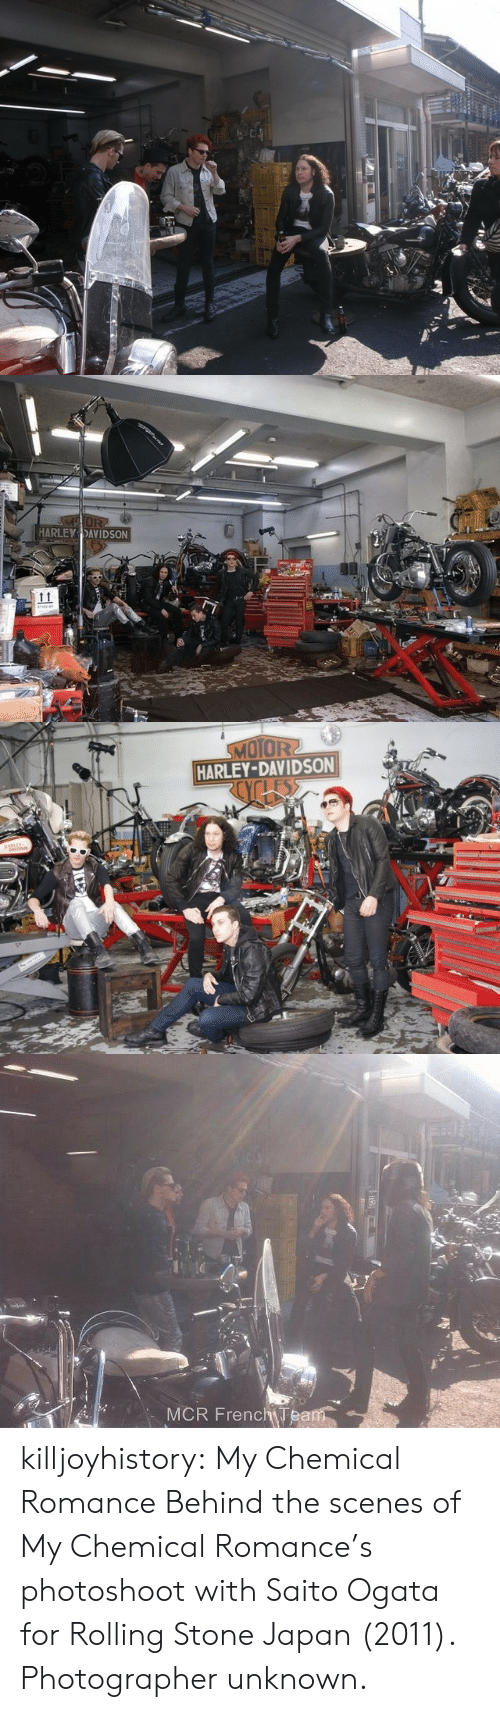 davidson: MOR  HARLEY DAVIDSON   MOTOR2  HARLEY-DAVIDSON  os   MCR FrenchTeam killjoyhistory:  My Chemical Romance Behind the scenes of My Chemical Romance's photoshoot with Saito Ogata for Rolling Stone Japan (2011). Photographer unknown.